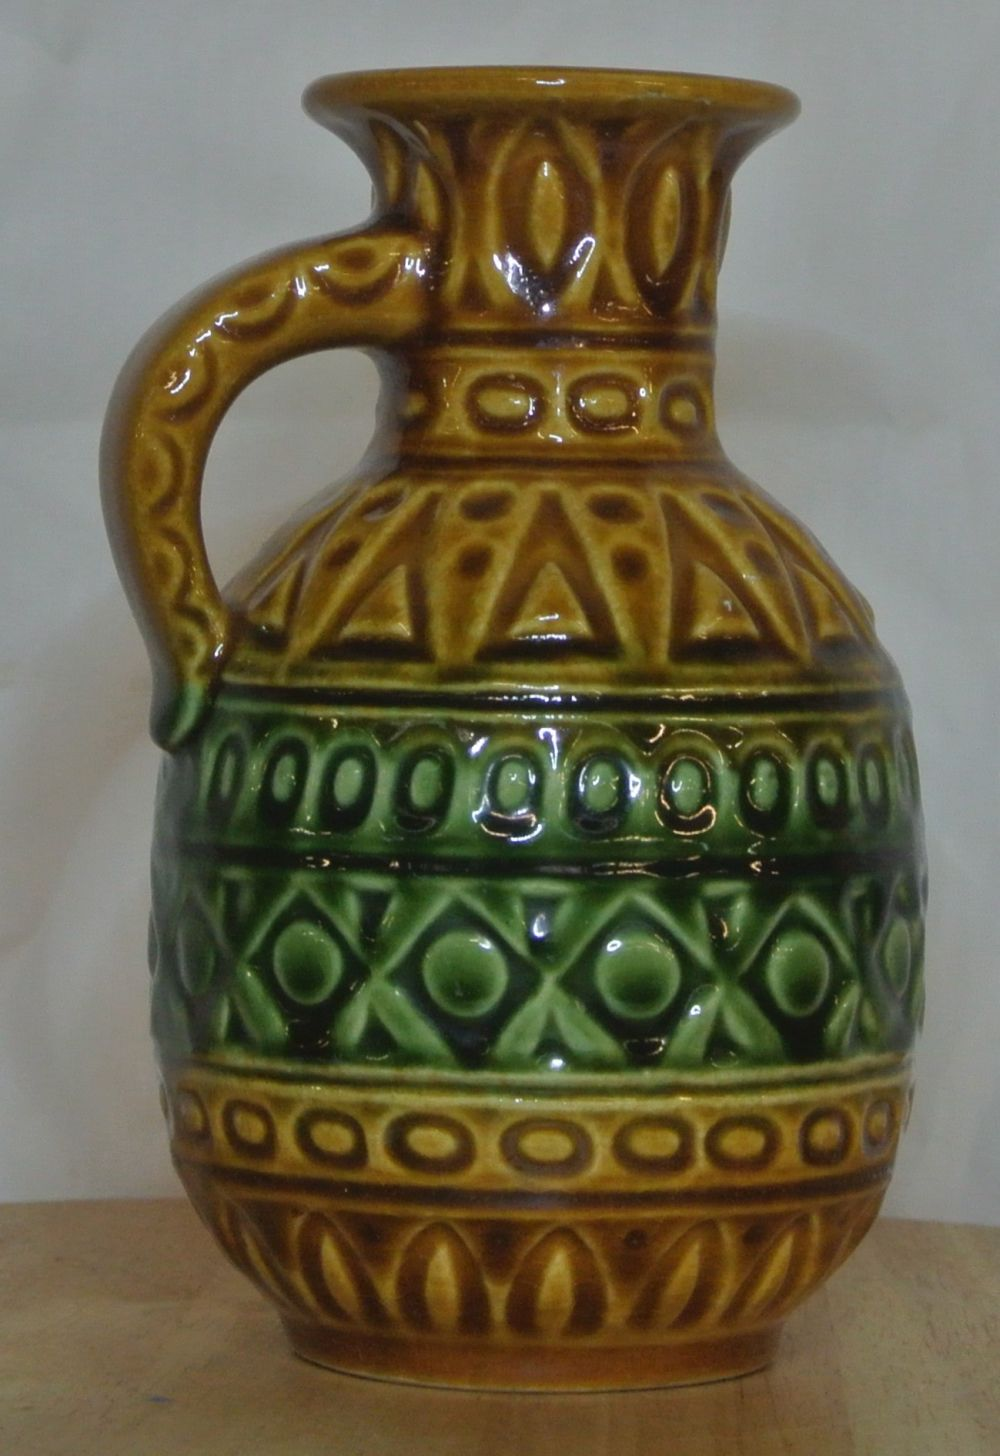 Lot 44: A vintage/ Mid Century Western German 'Fat Lava' jug